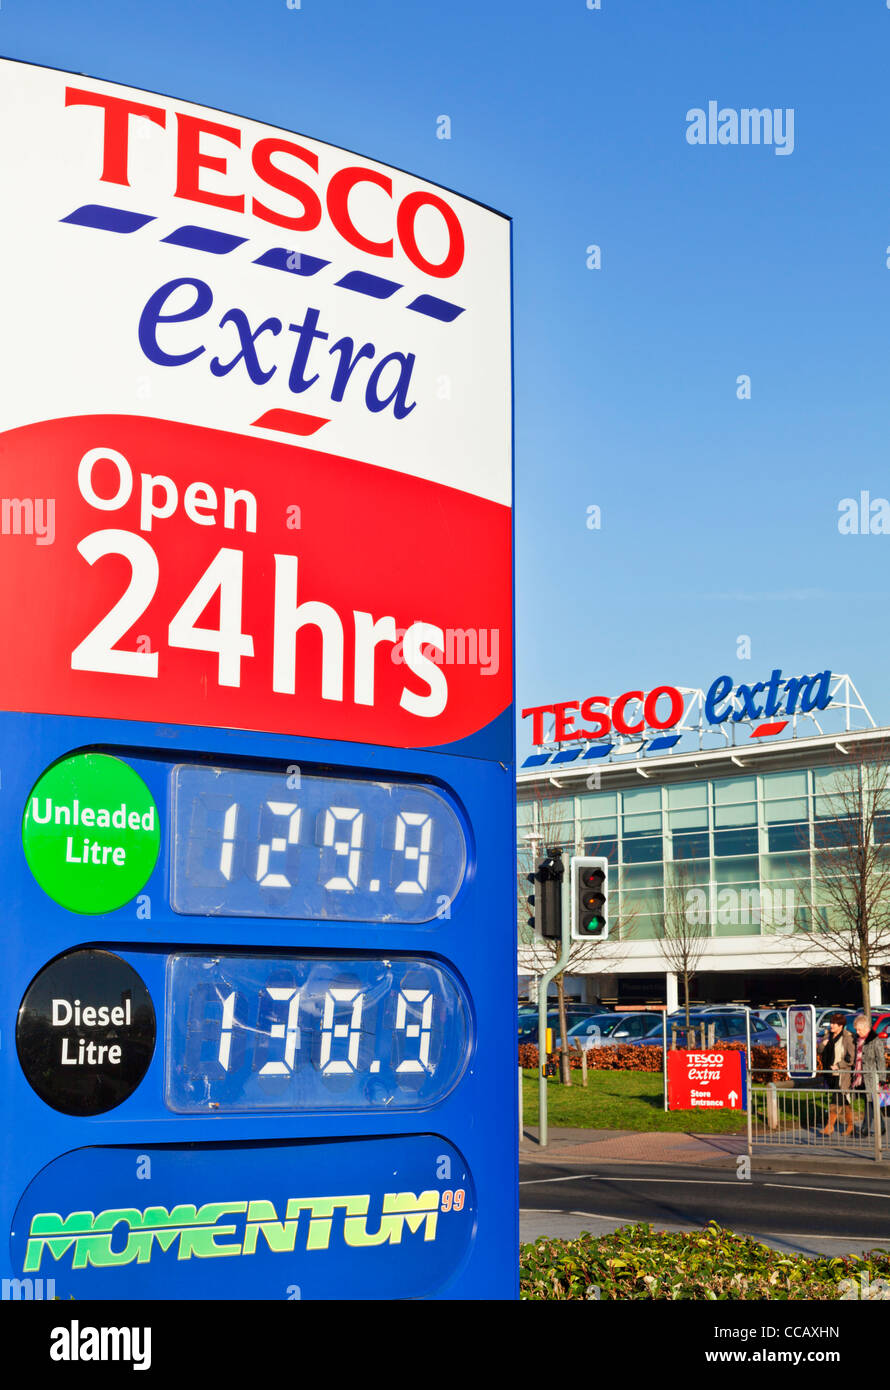 Tesco extra open 24 hours petrol station sign long eaton town centre derbyshire England UK GB EU Europe - Stock Image